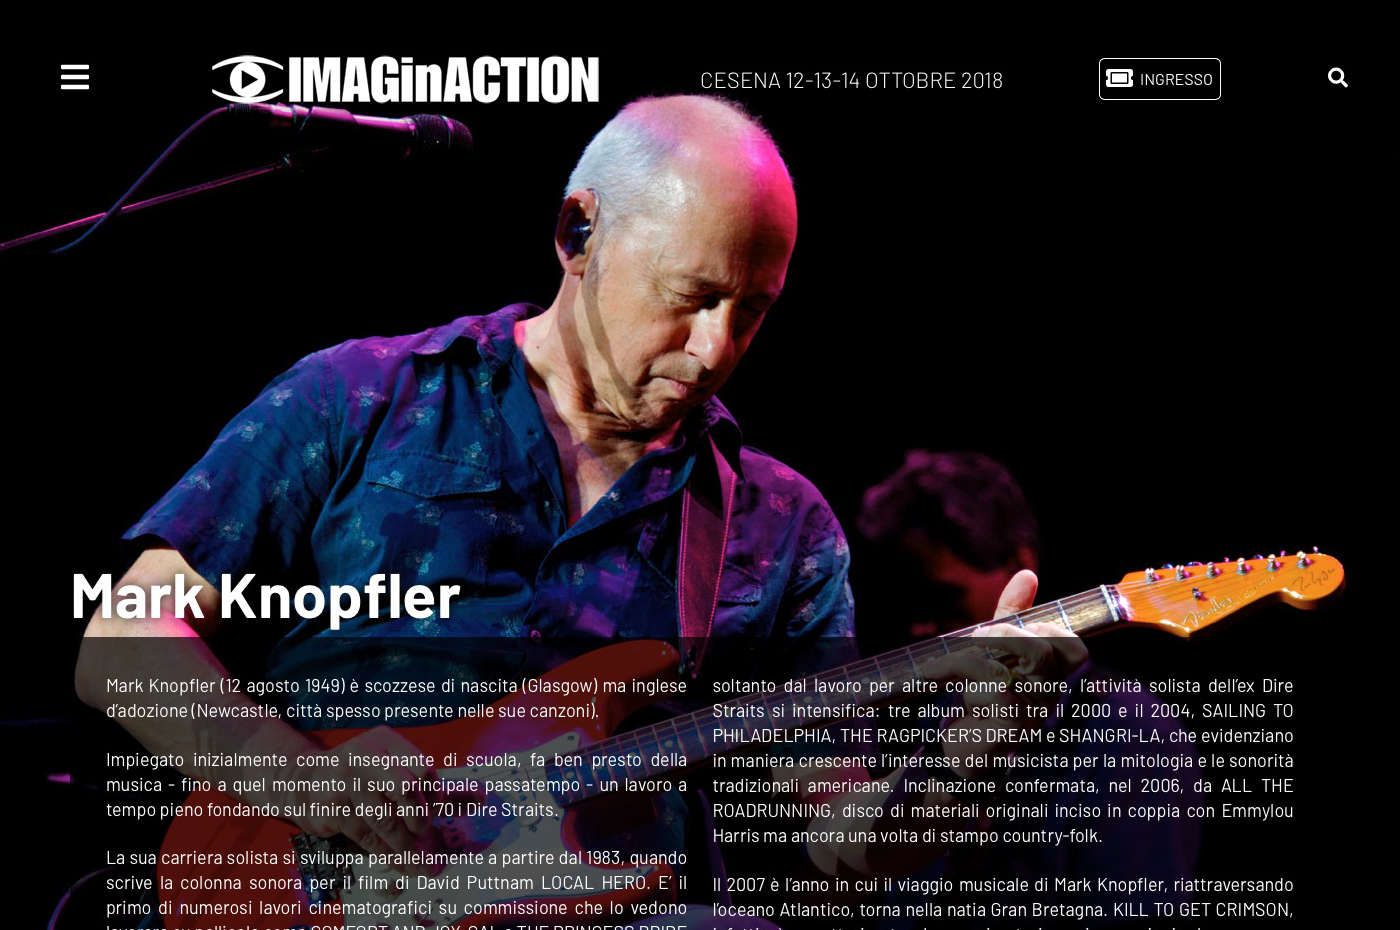 IMAGinACTION - Mark Knopfler